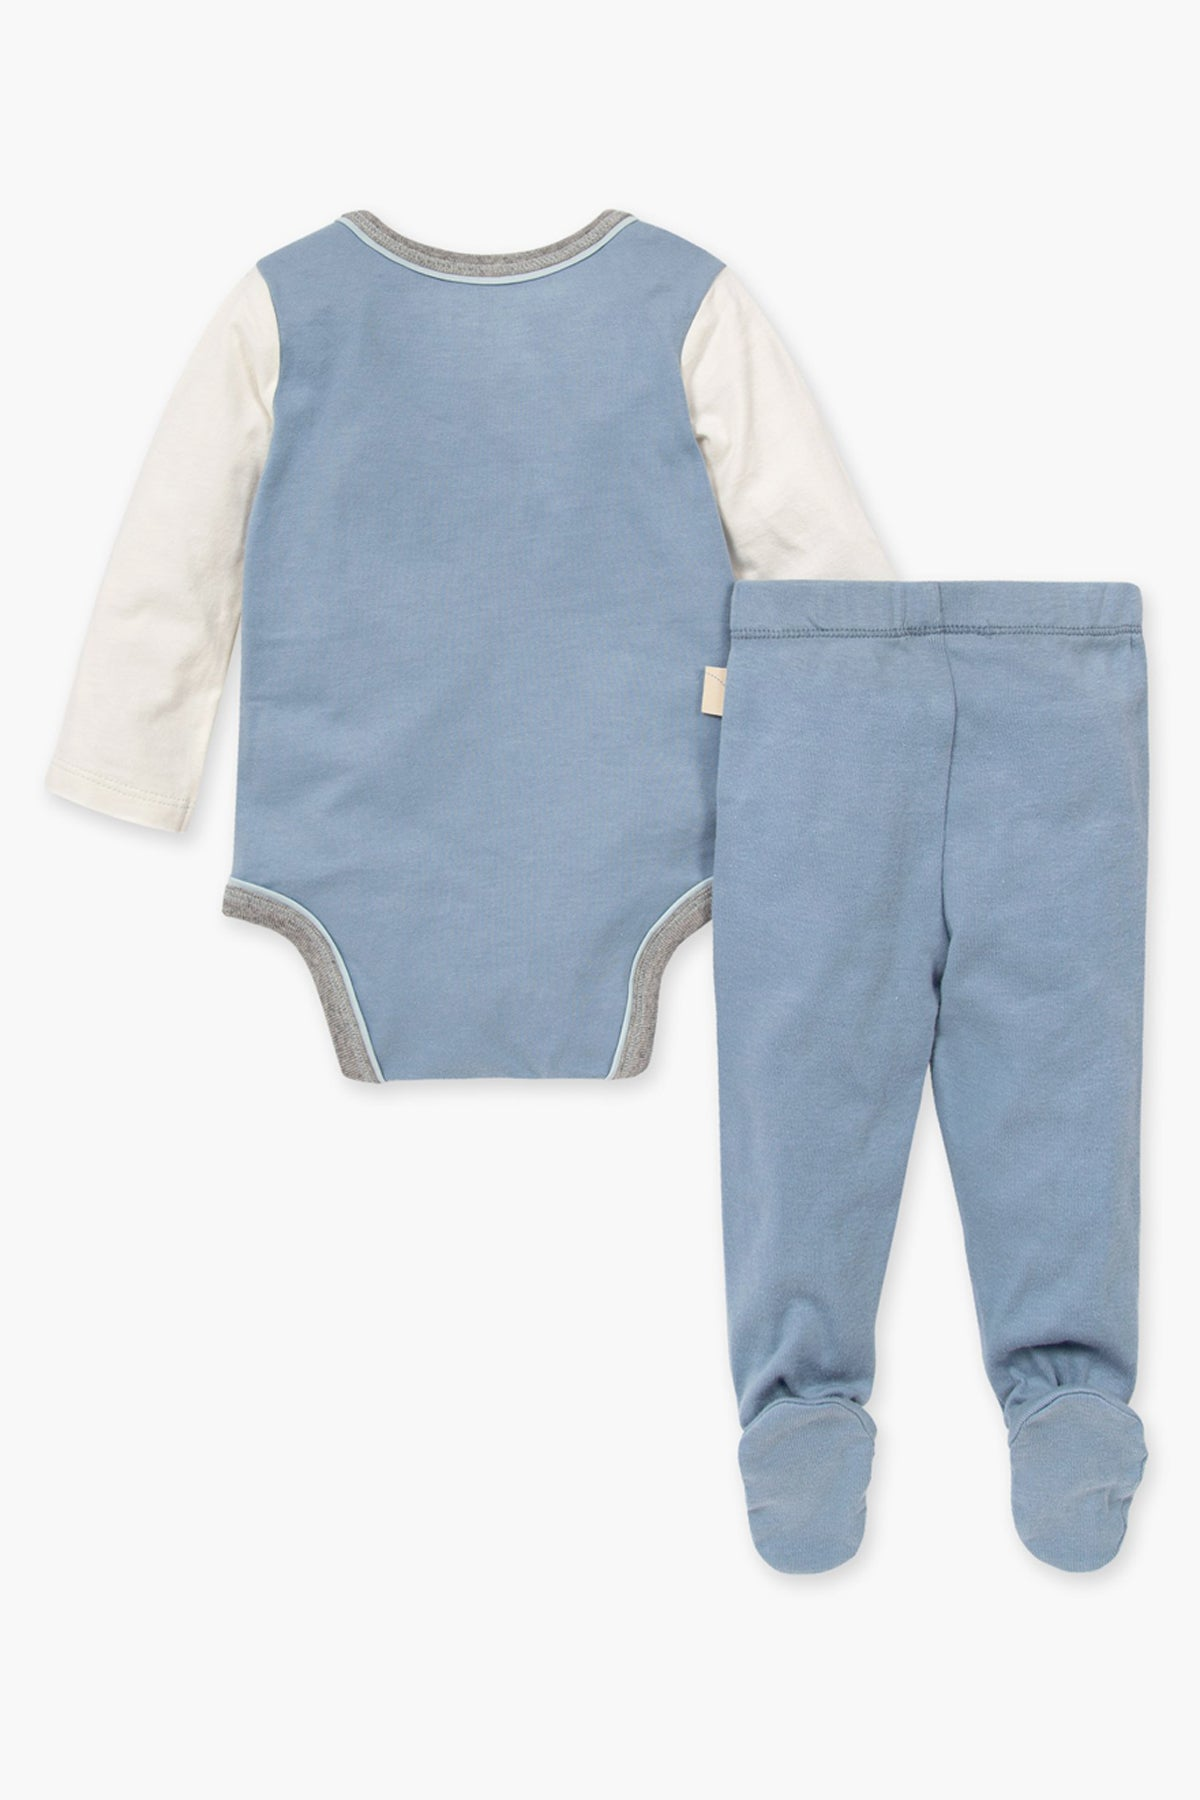 Burt's Bees Mountainscape Onesie And Baby Pants Set